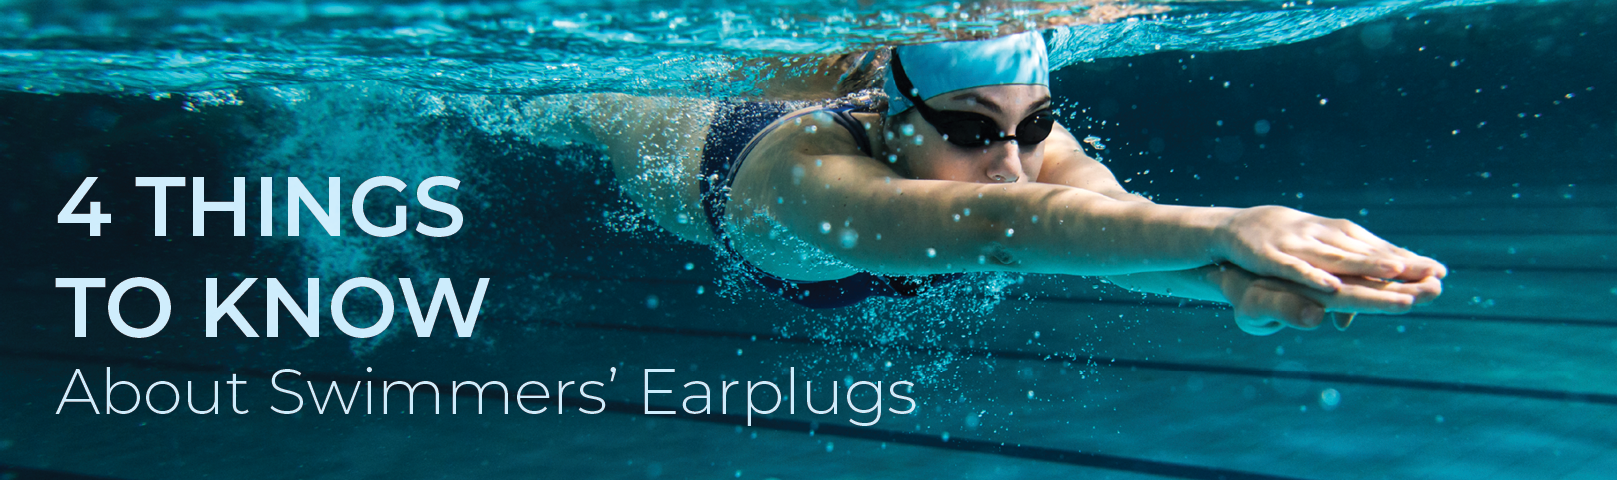 4 Things to Know About Swimmers' Earplugs